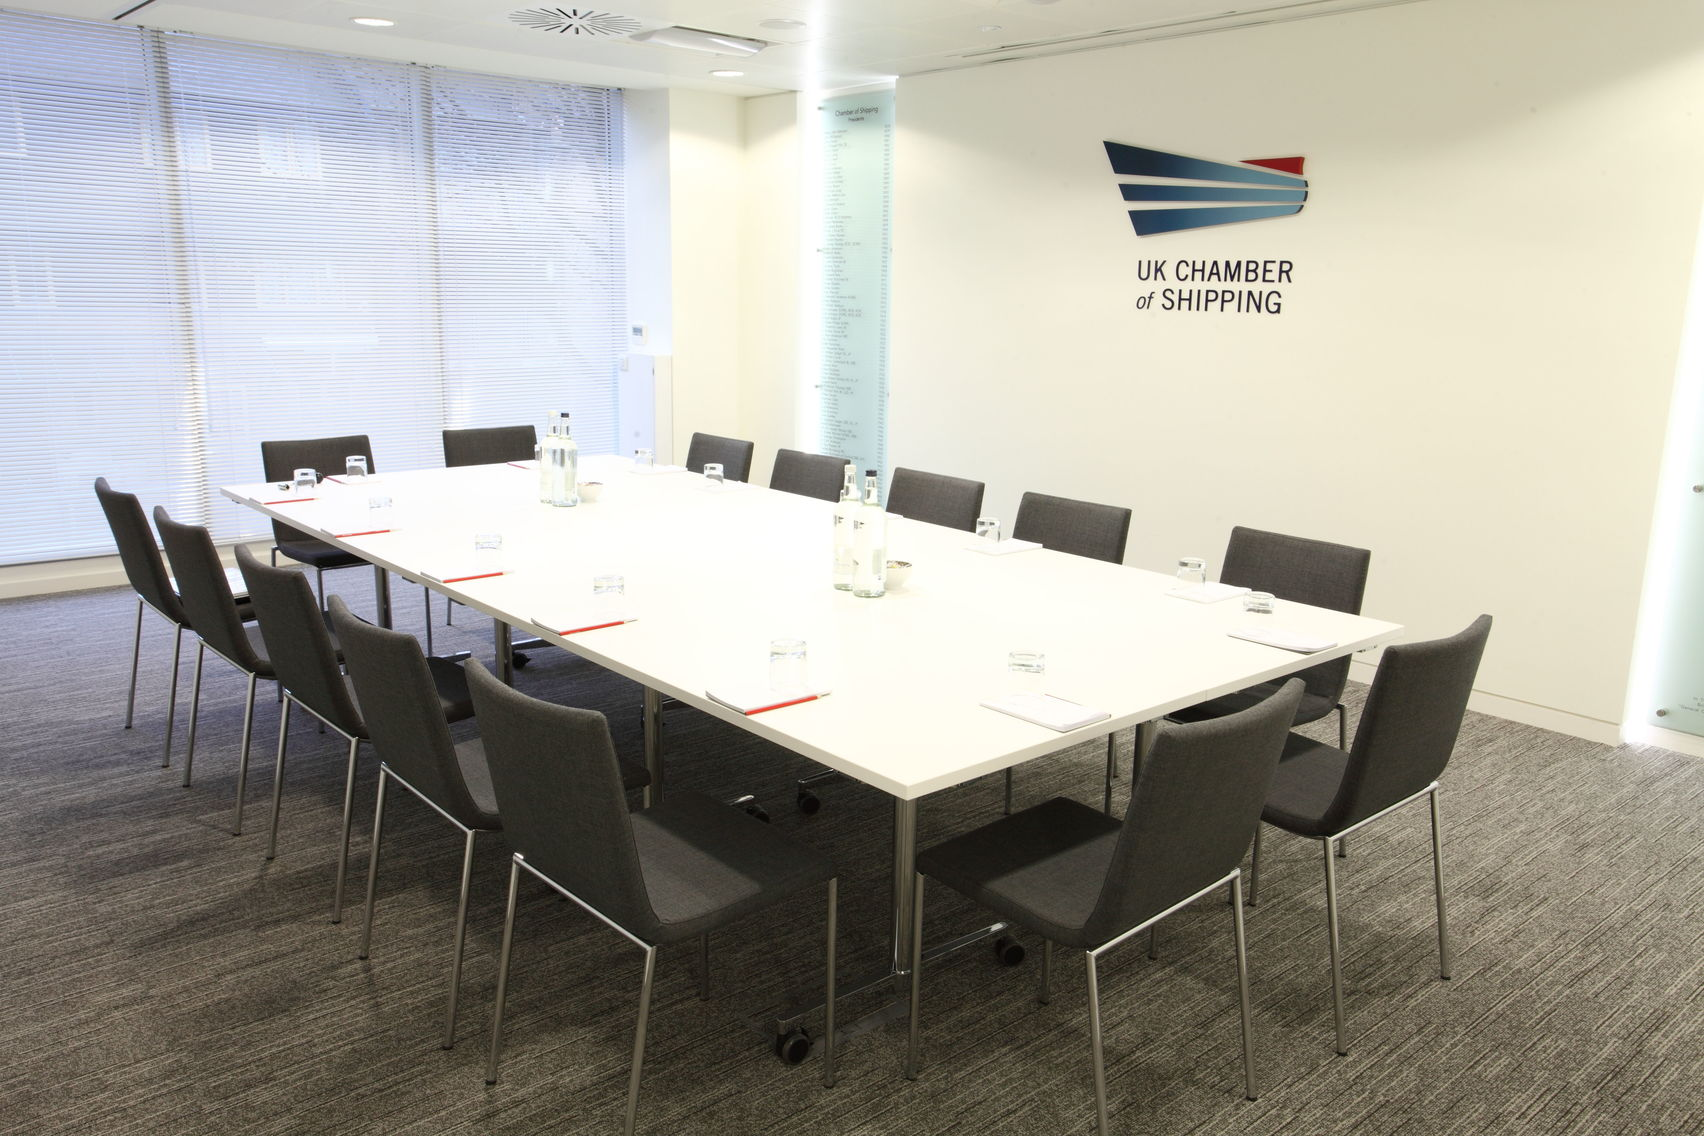 Meeting Room 3, UK Chamber of Shipping